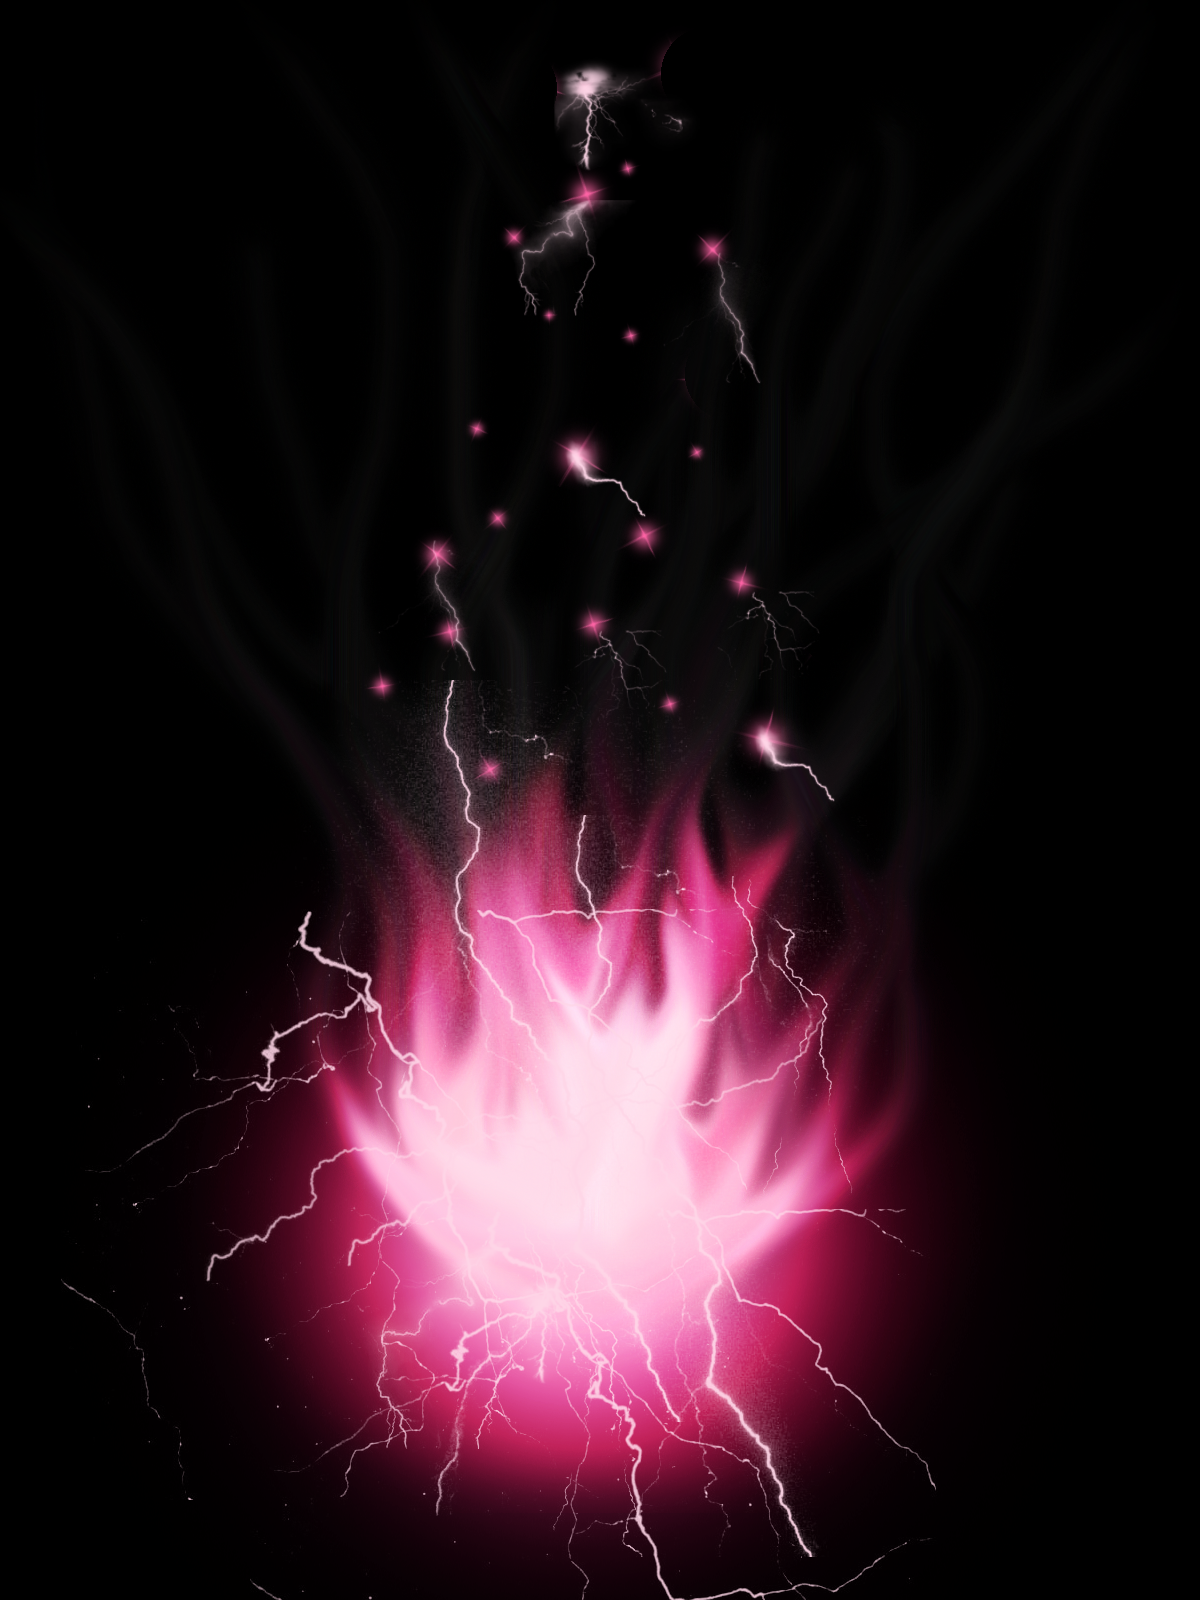 Magical Energy by kissmyasma99 on DeviantArt